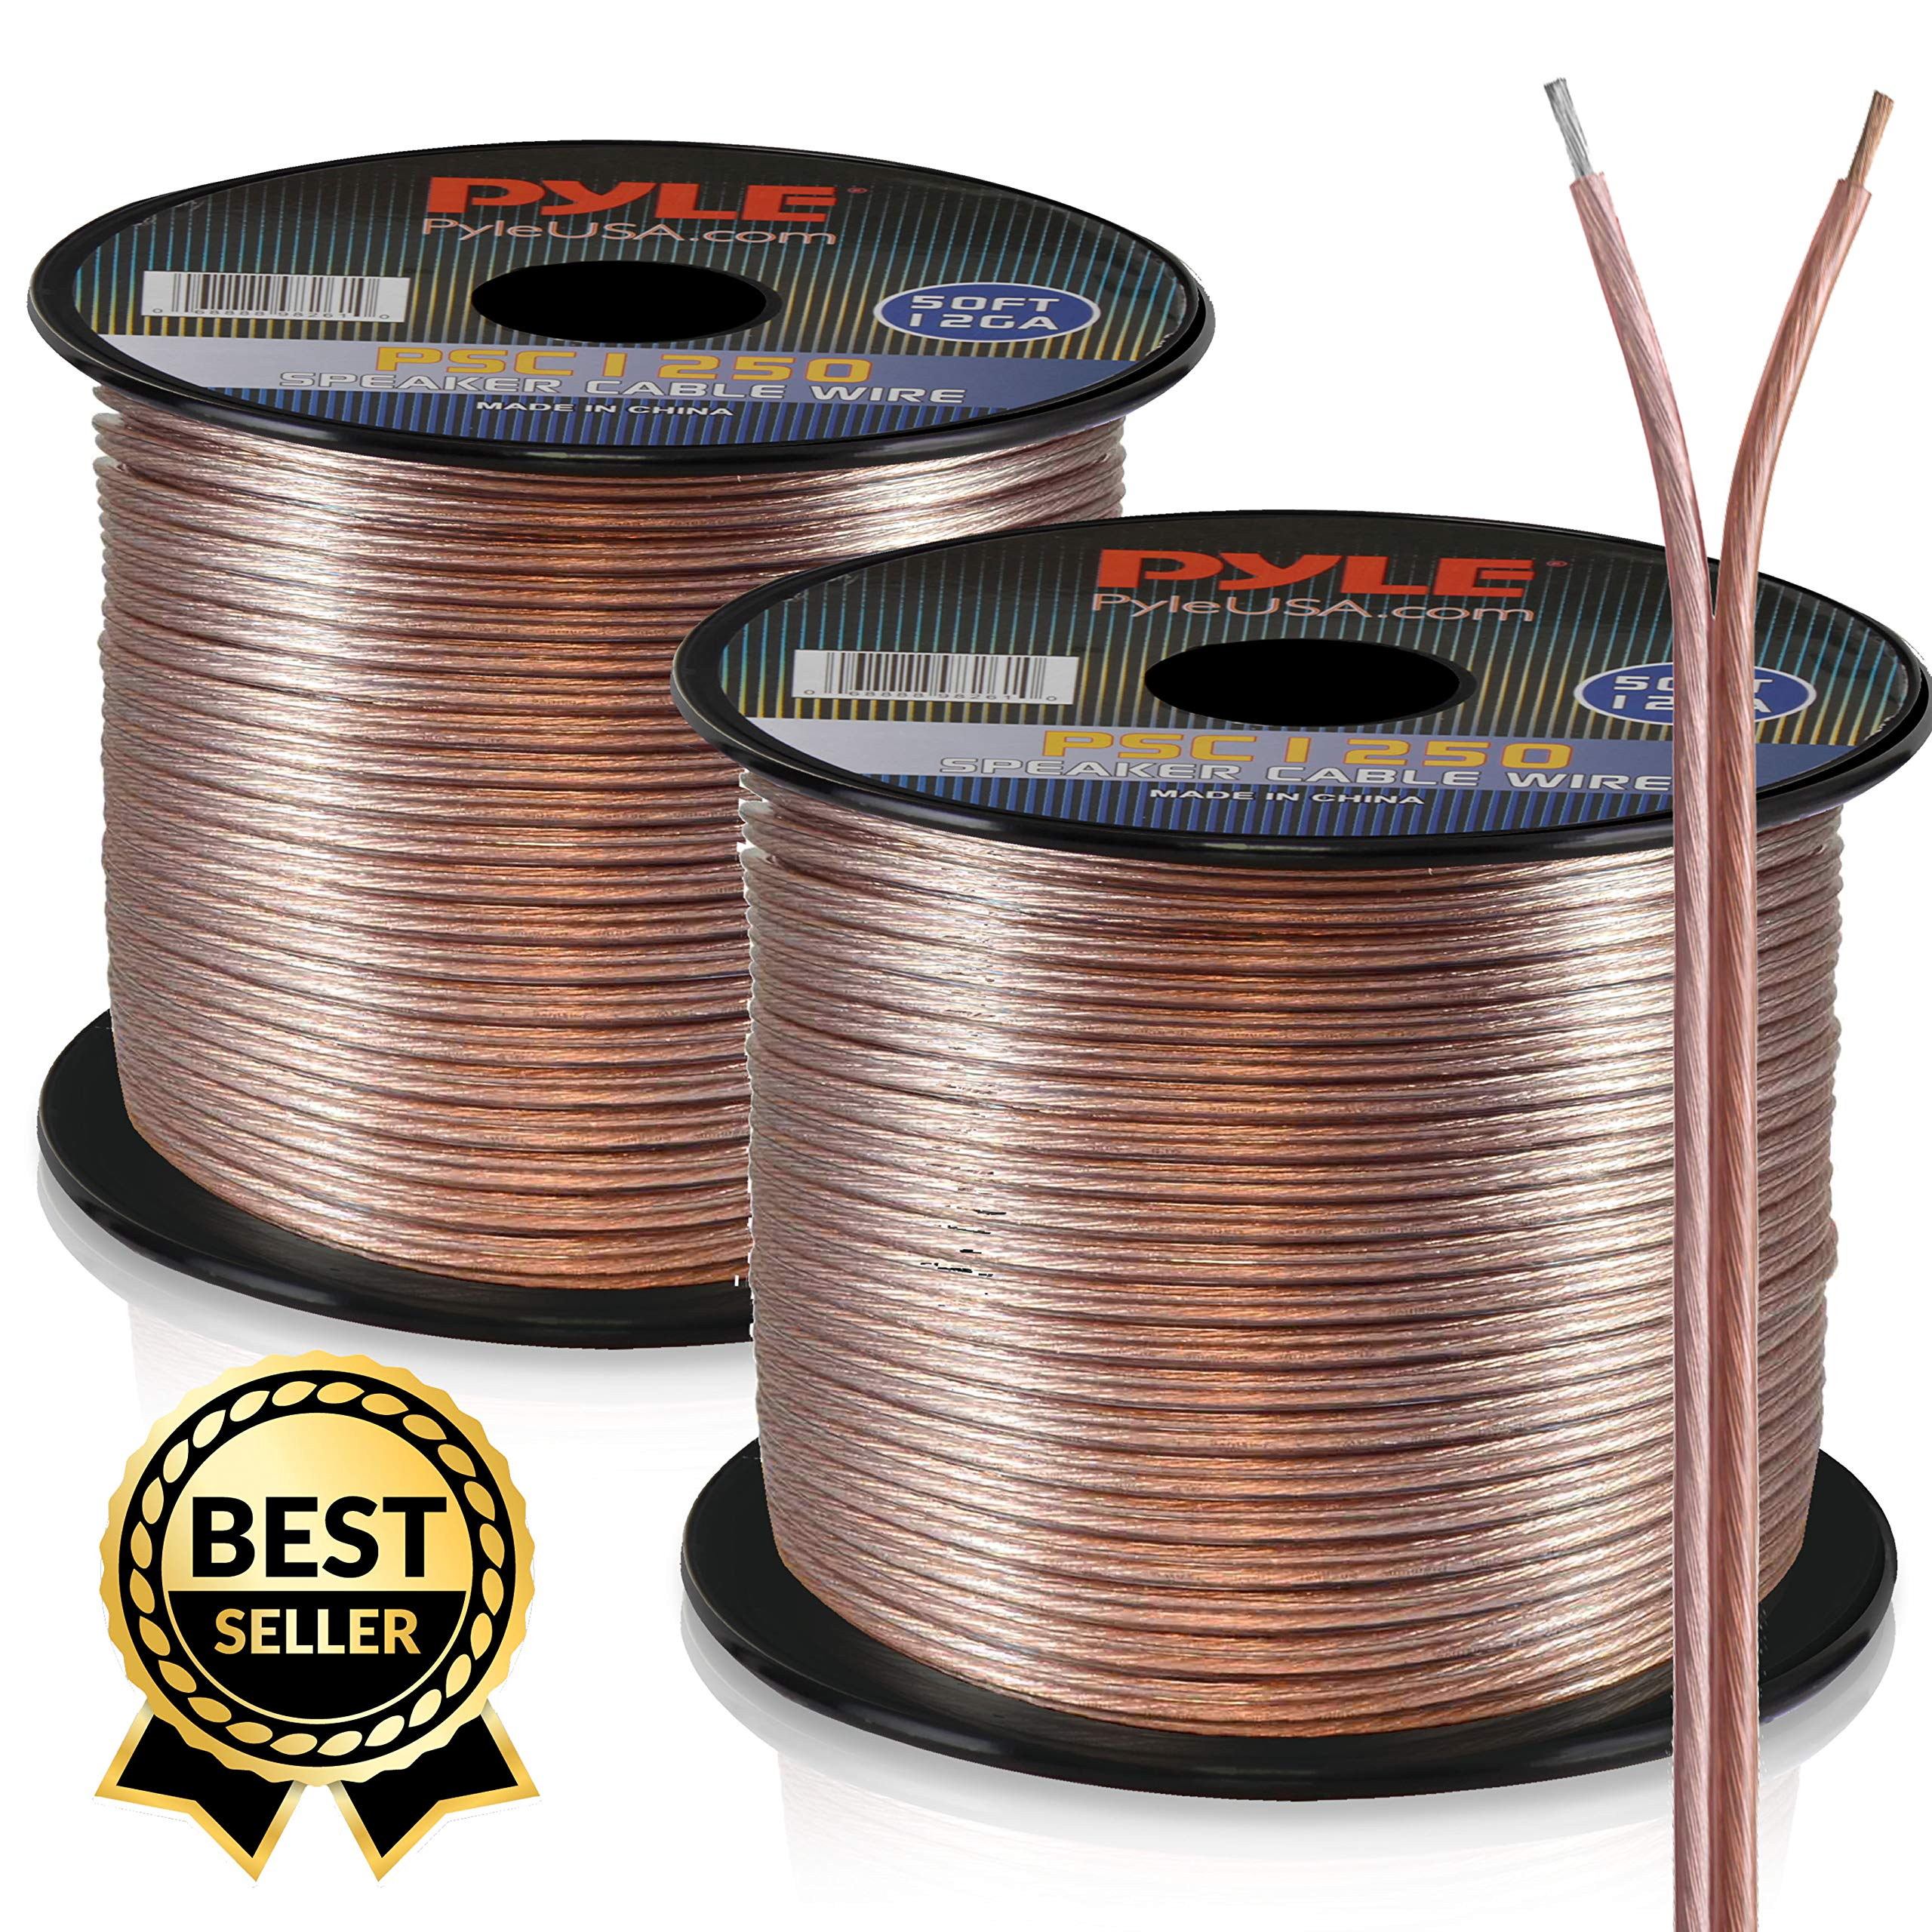 Best Rated In Car Speaker Wire Helpful Customer Reviews Wiring Audio Speakers Series 50ft 12 Gauge Copper Coated Cable Spool For Connecting Stereo To